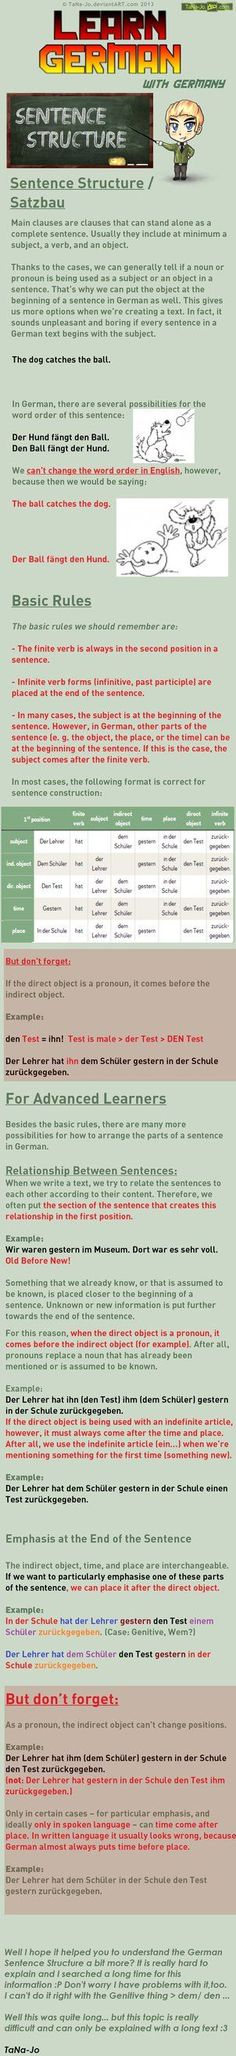 Learn German #18 Some time left to do LEARN GERMAN parts Sentence Structure...a heavy part -_- nnnh sorry for this long update >_< Thanks to VampireQueenEffeffia Who suggested this theme...